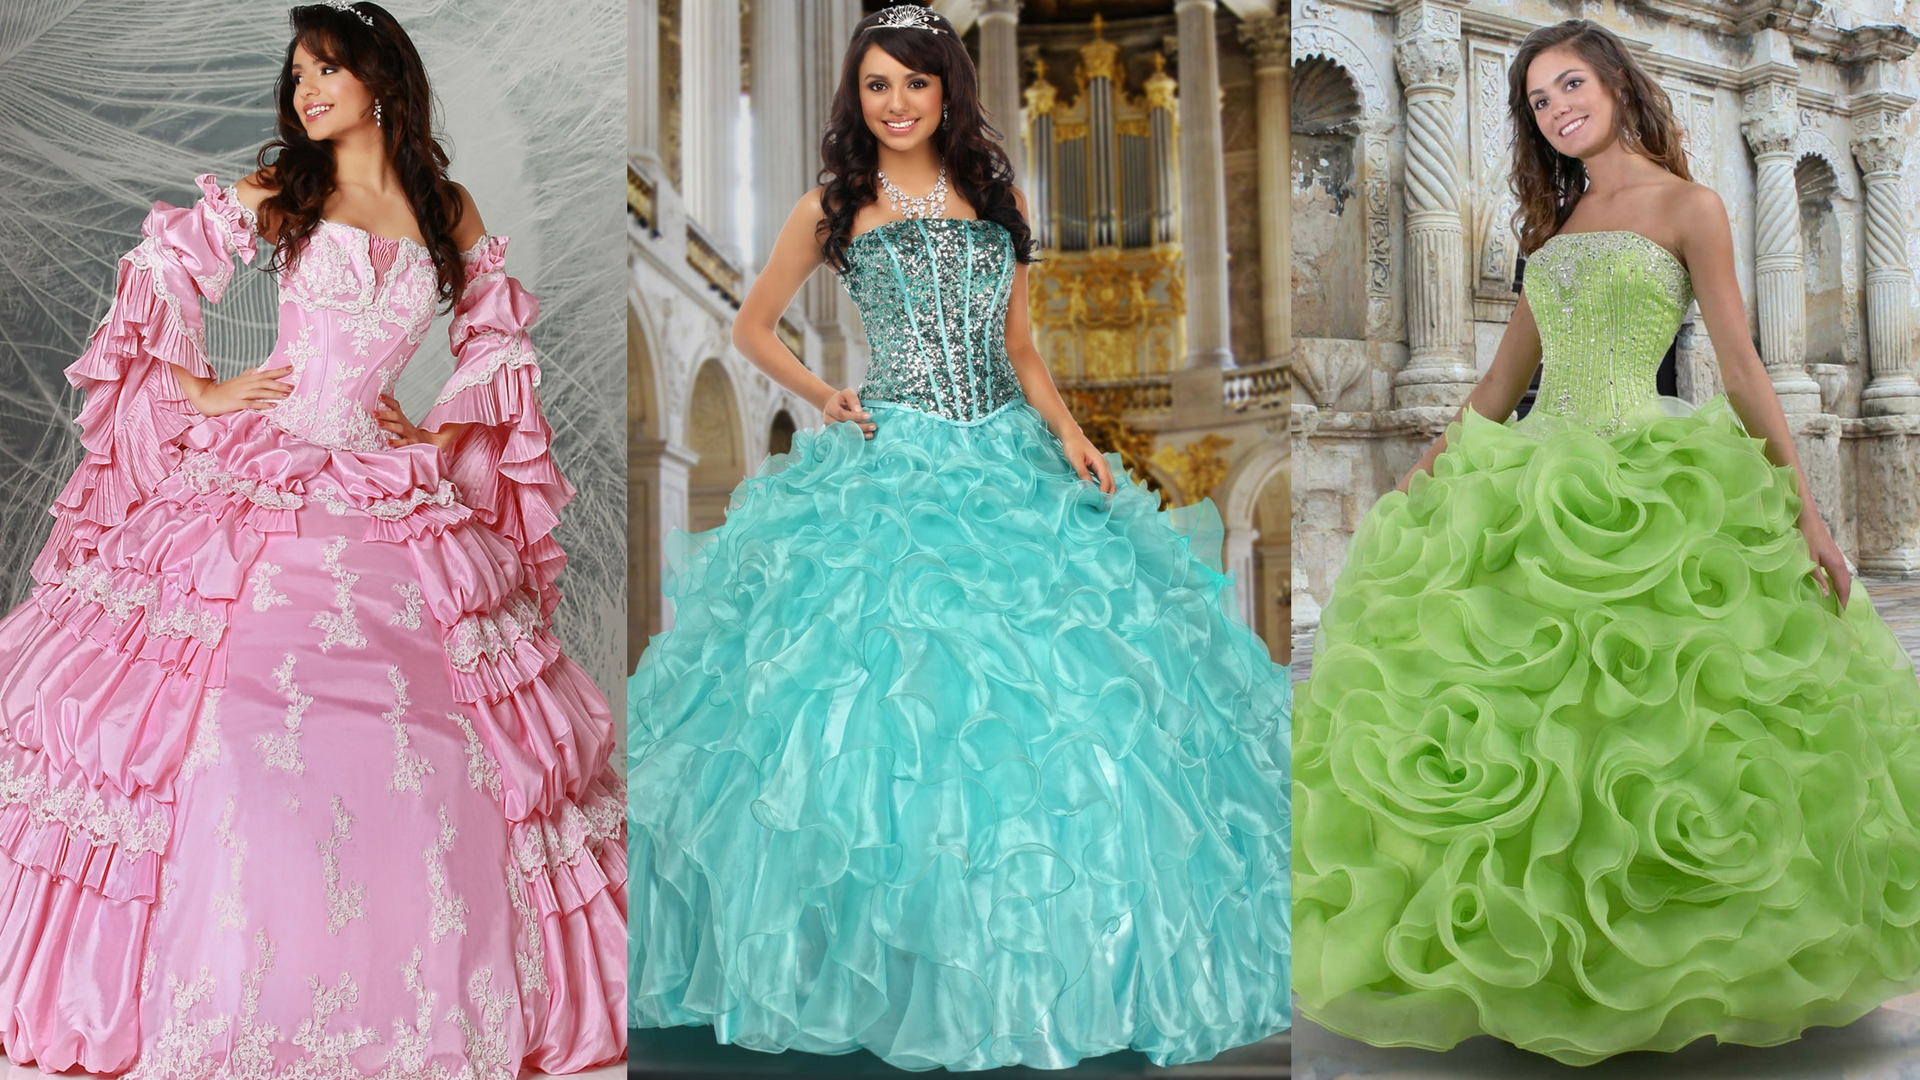 Strapless & Sweet: Modest Quinceanera Gowns with a Straight-Across Bodice